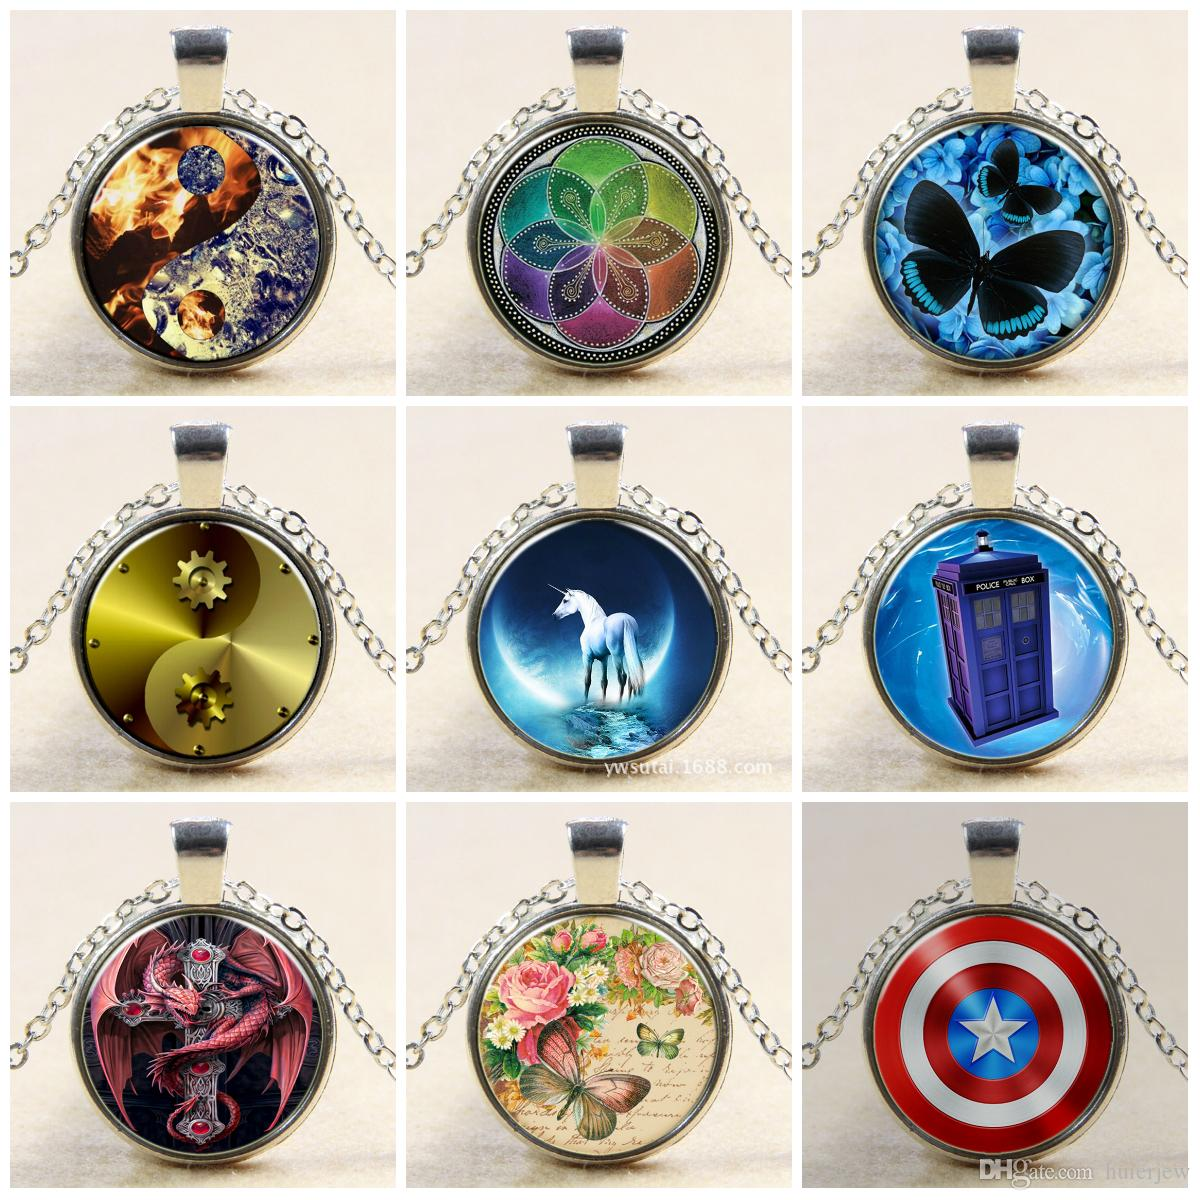 Wholesale necklace pendants doctor who necklace round glass wholesale necklace pendants doctor who necklace round glass necklace doctor who time lord seal pendant time lord gallifreyan glass cabochon necklaces coin aloadofball Image collections